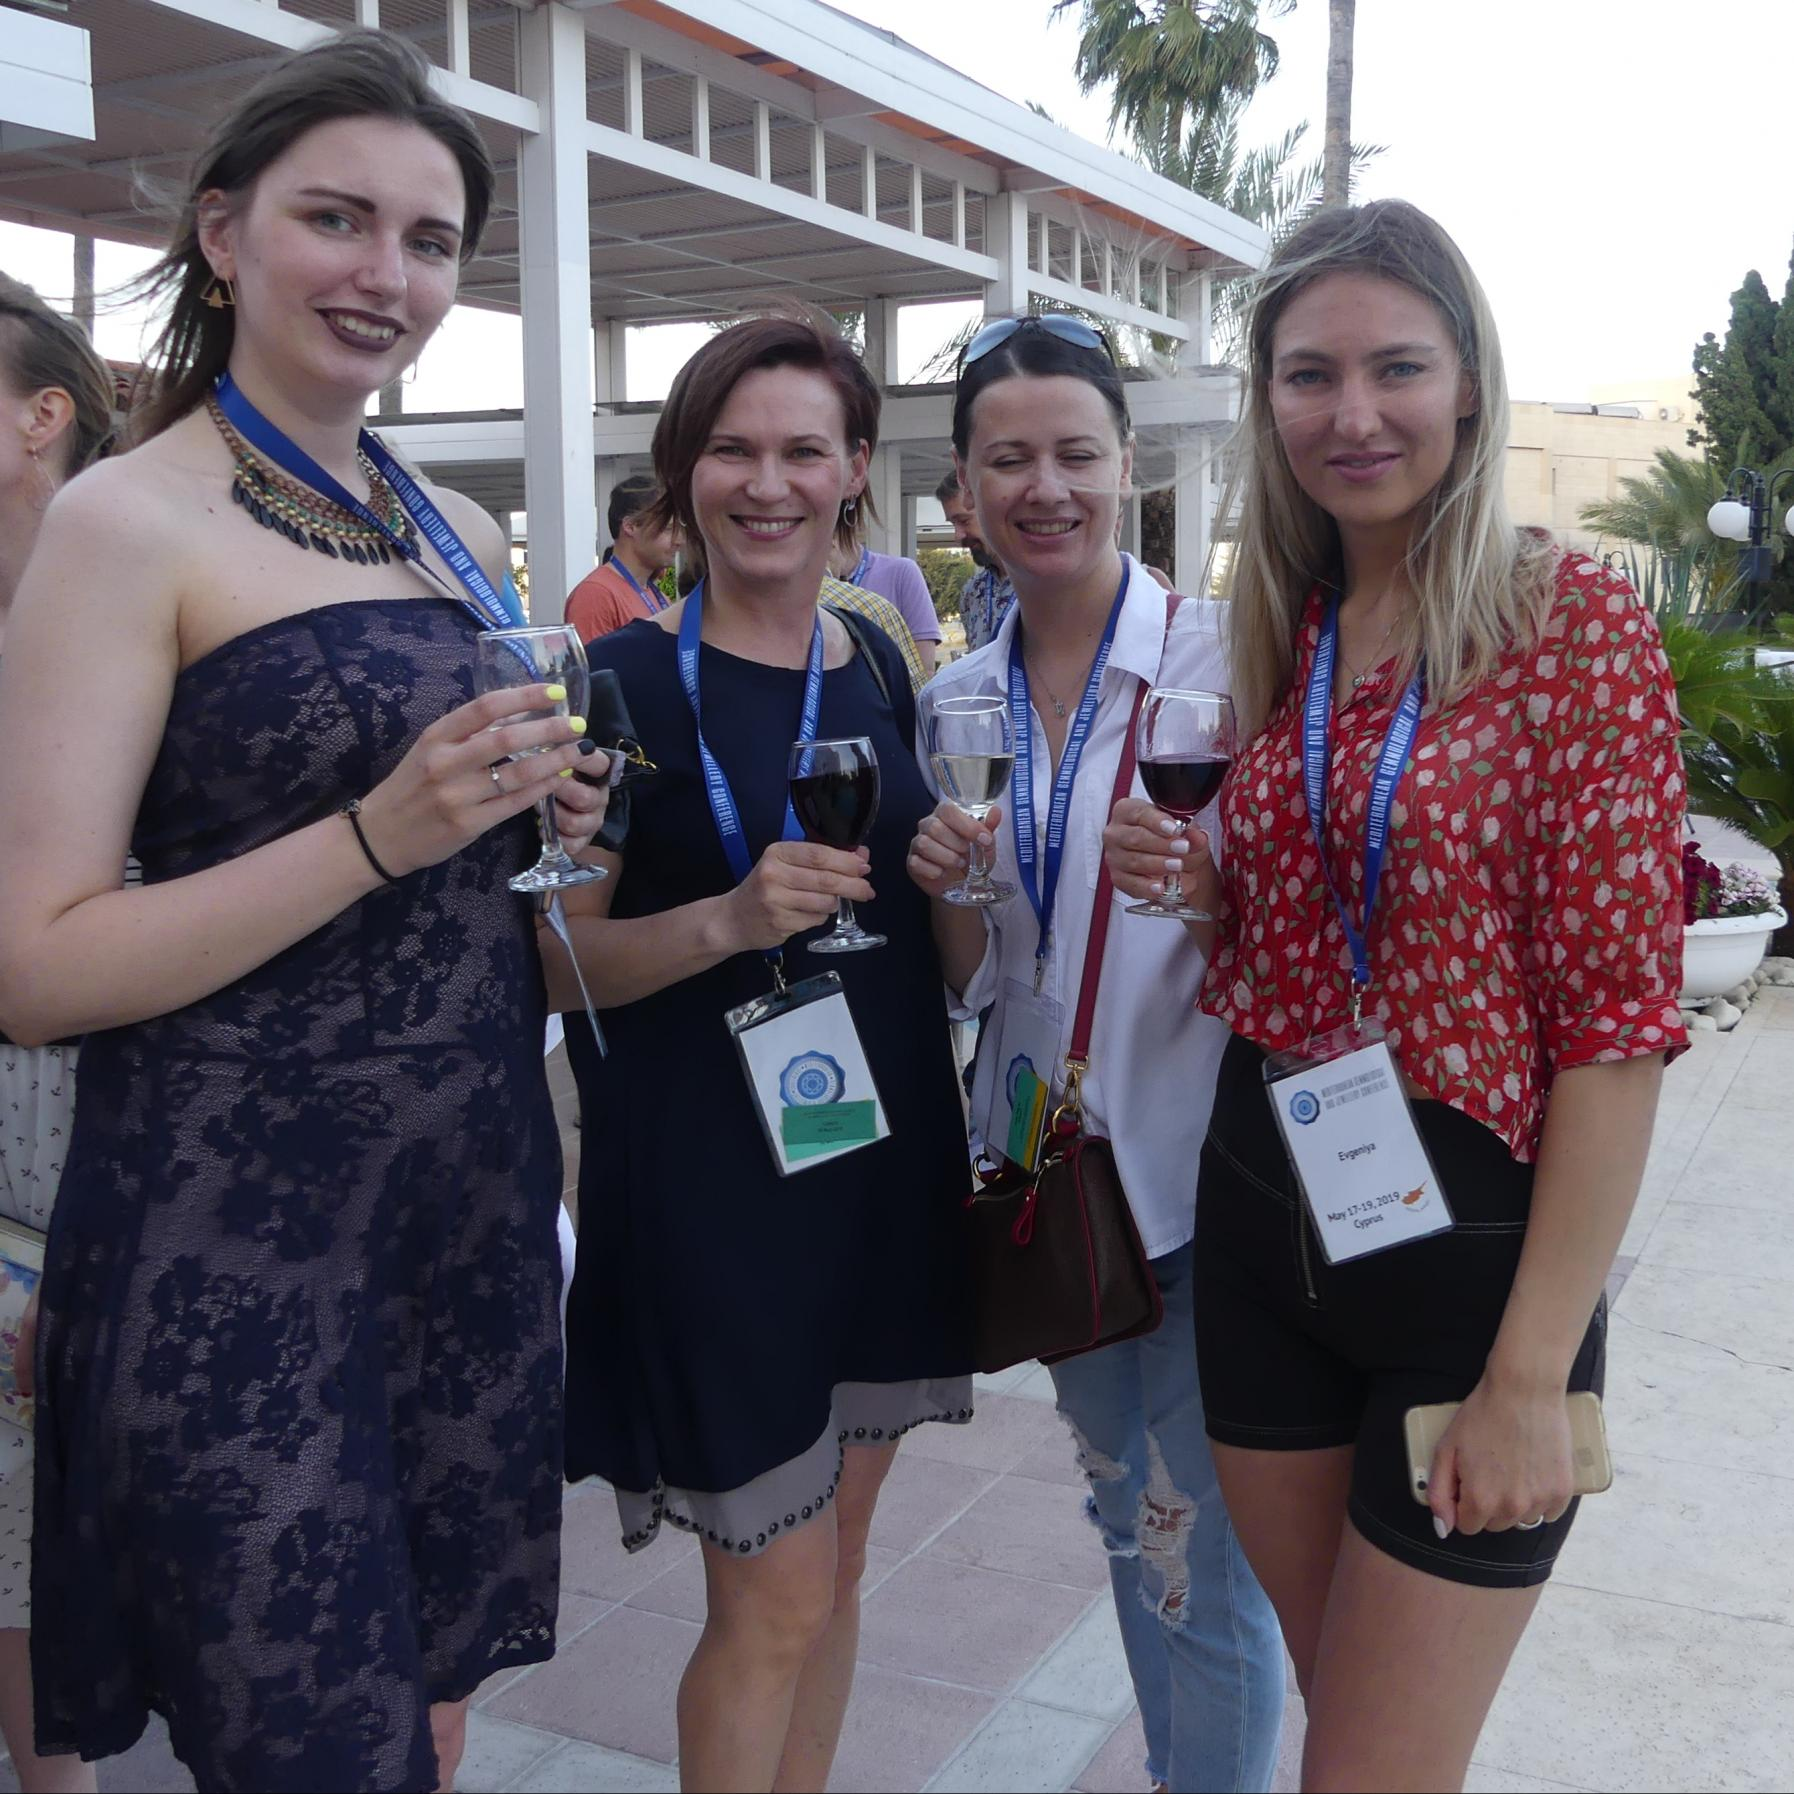 Russian participants at cocktail reception